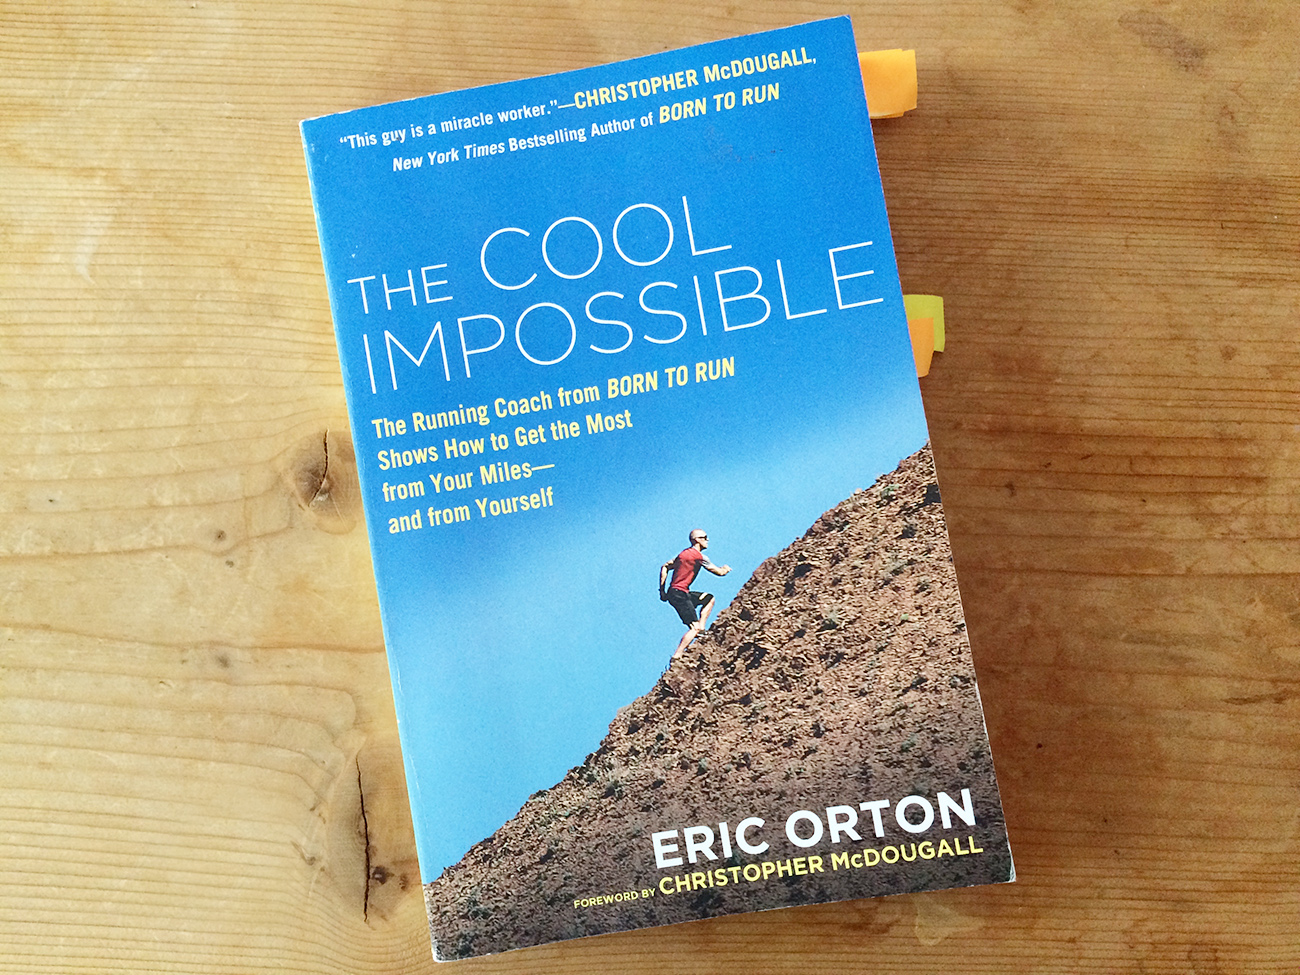 Improve Your Run, Find Your Cool Impossible